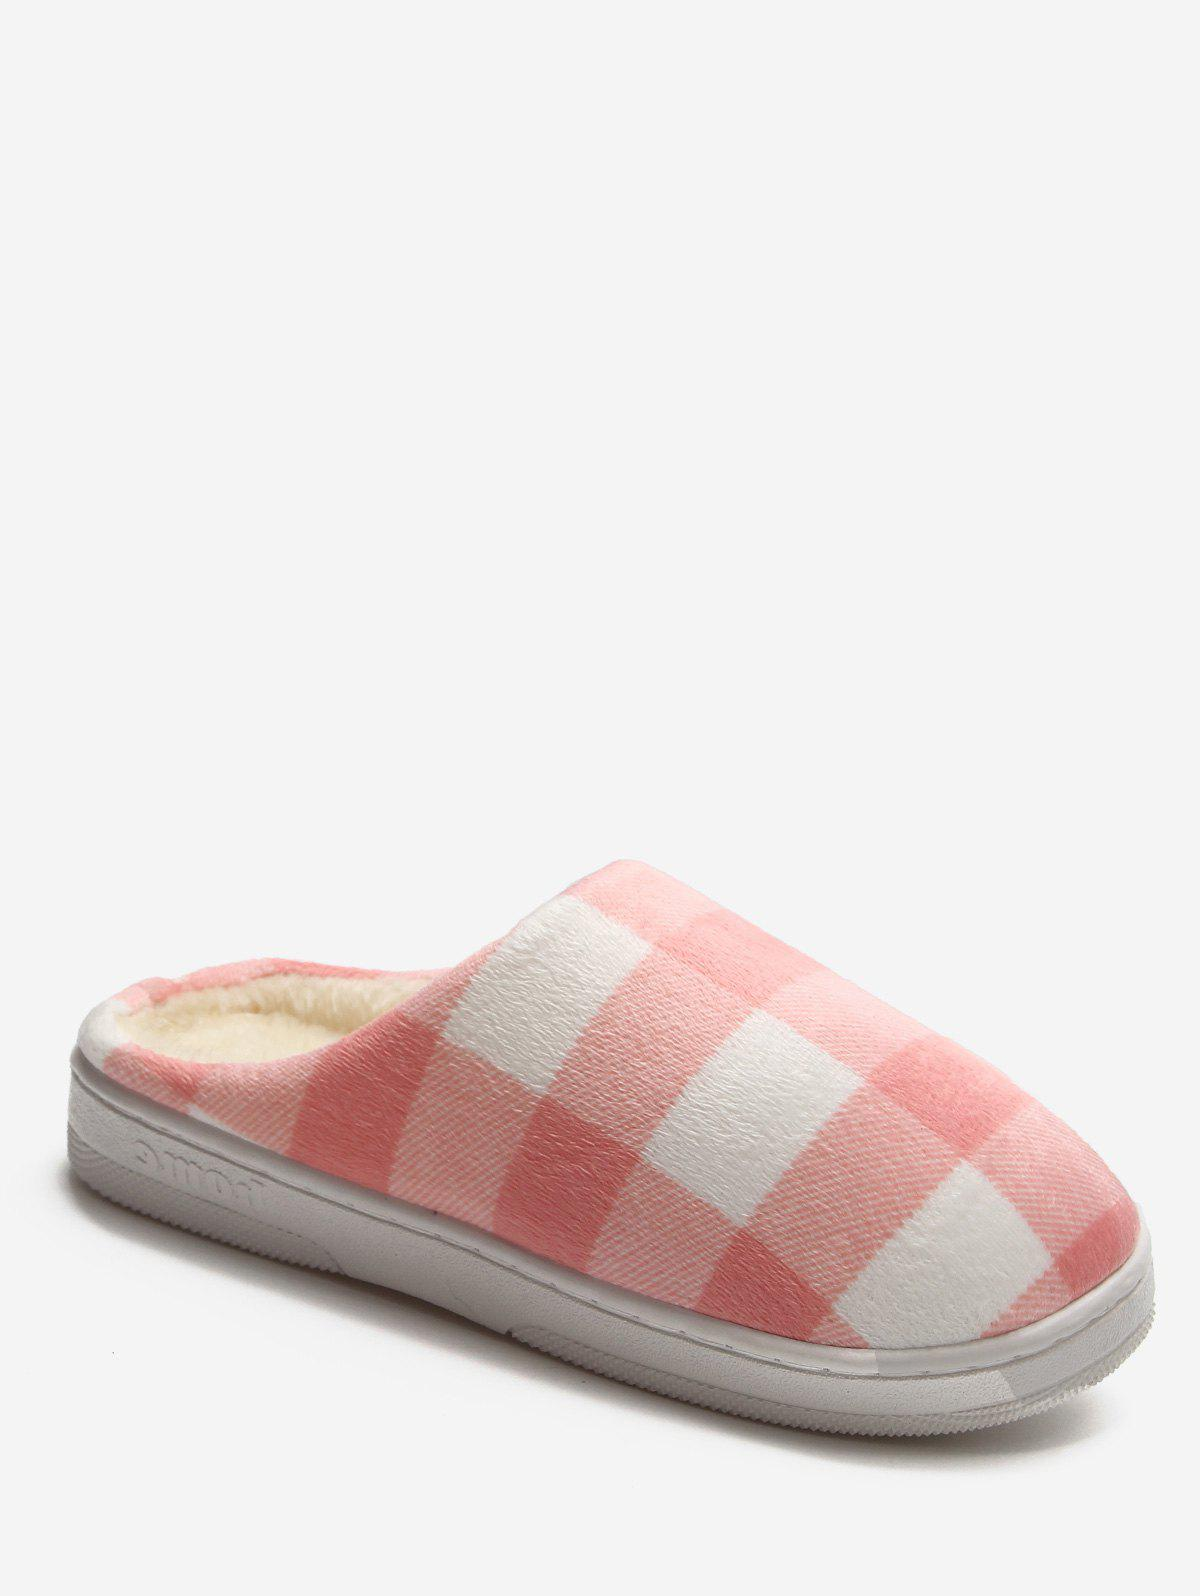 Best Plaid Cotton Indoor Warm Slippers